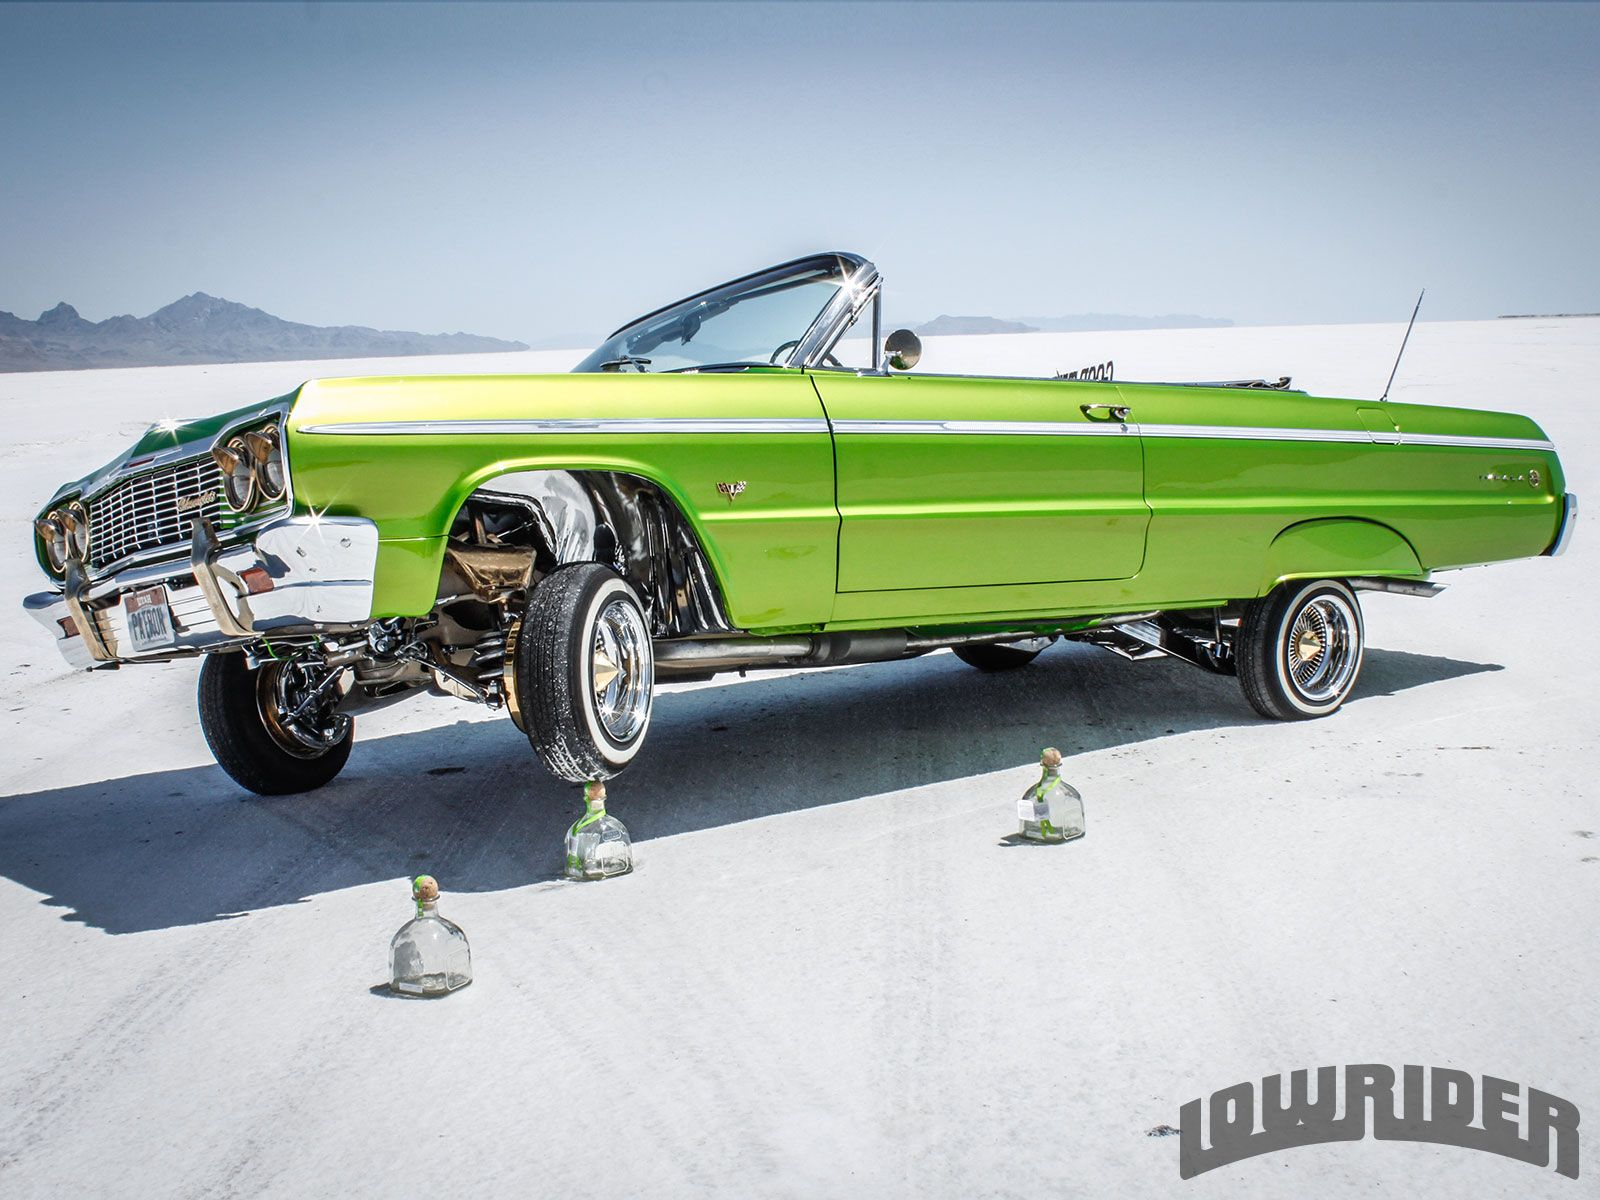 While he wanted to build the perfect 1964 chevrolet impala jose cornejo decided on building